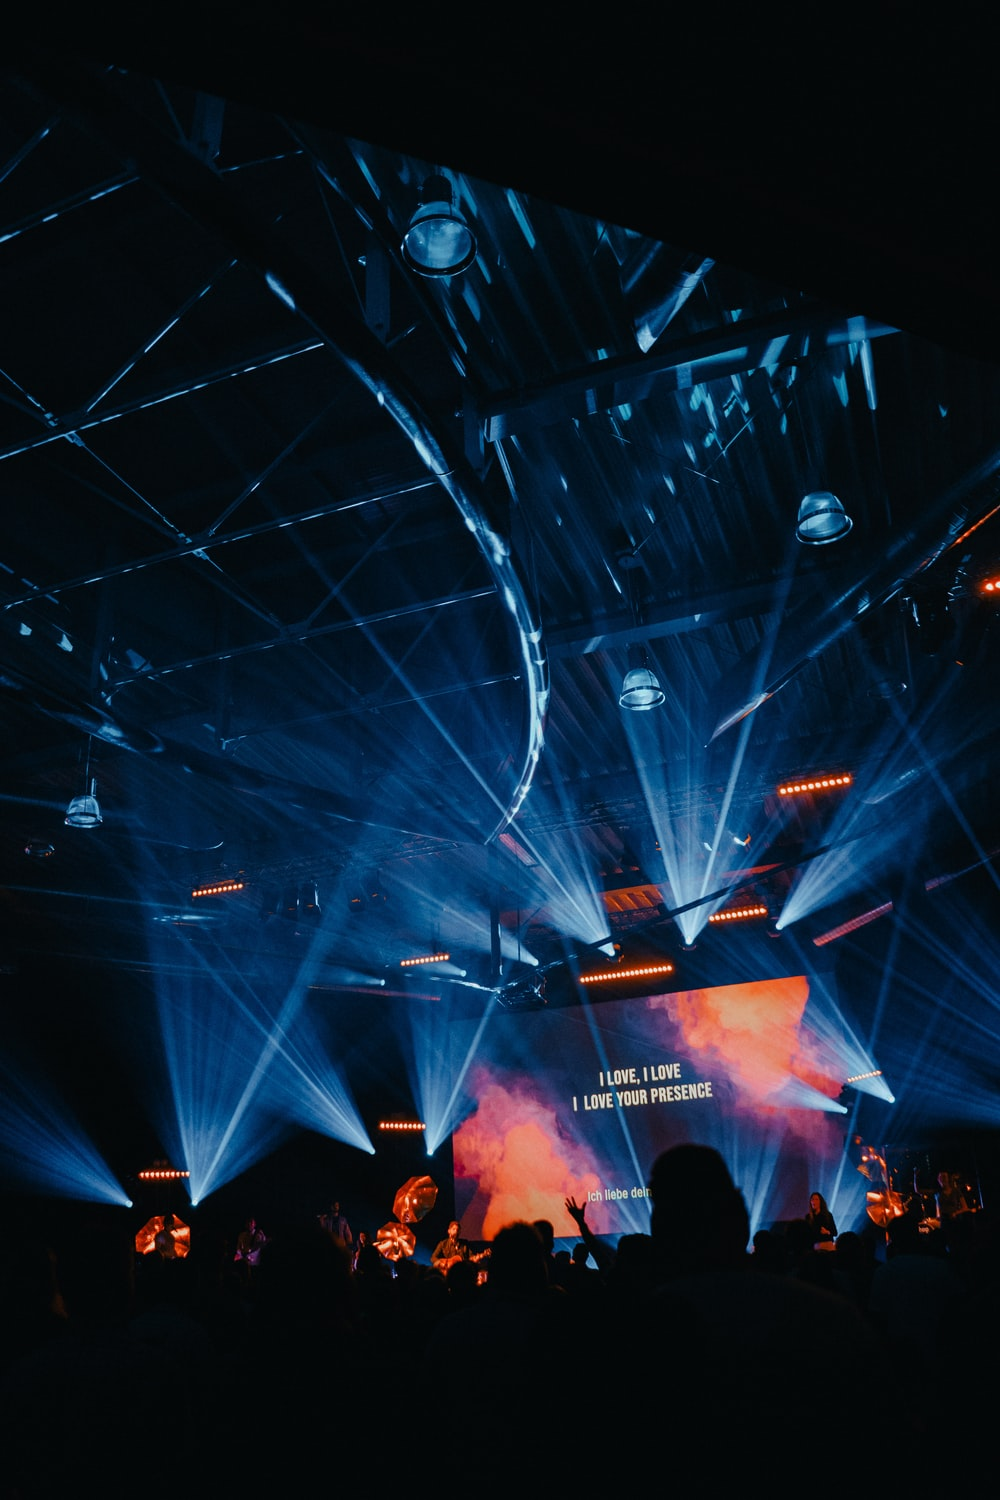 projector screen displaying text in stage with lights